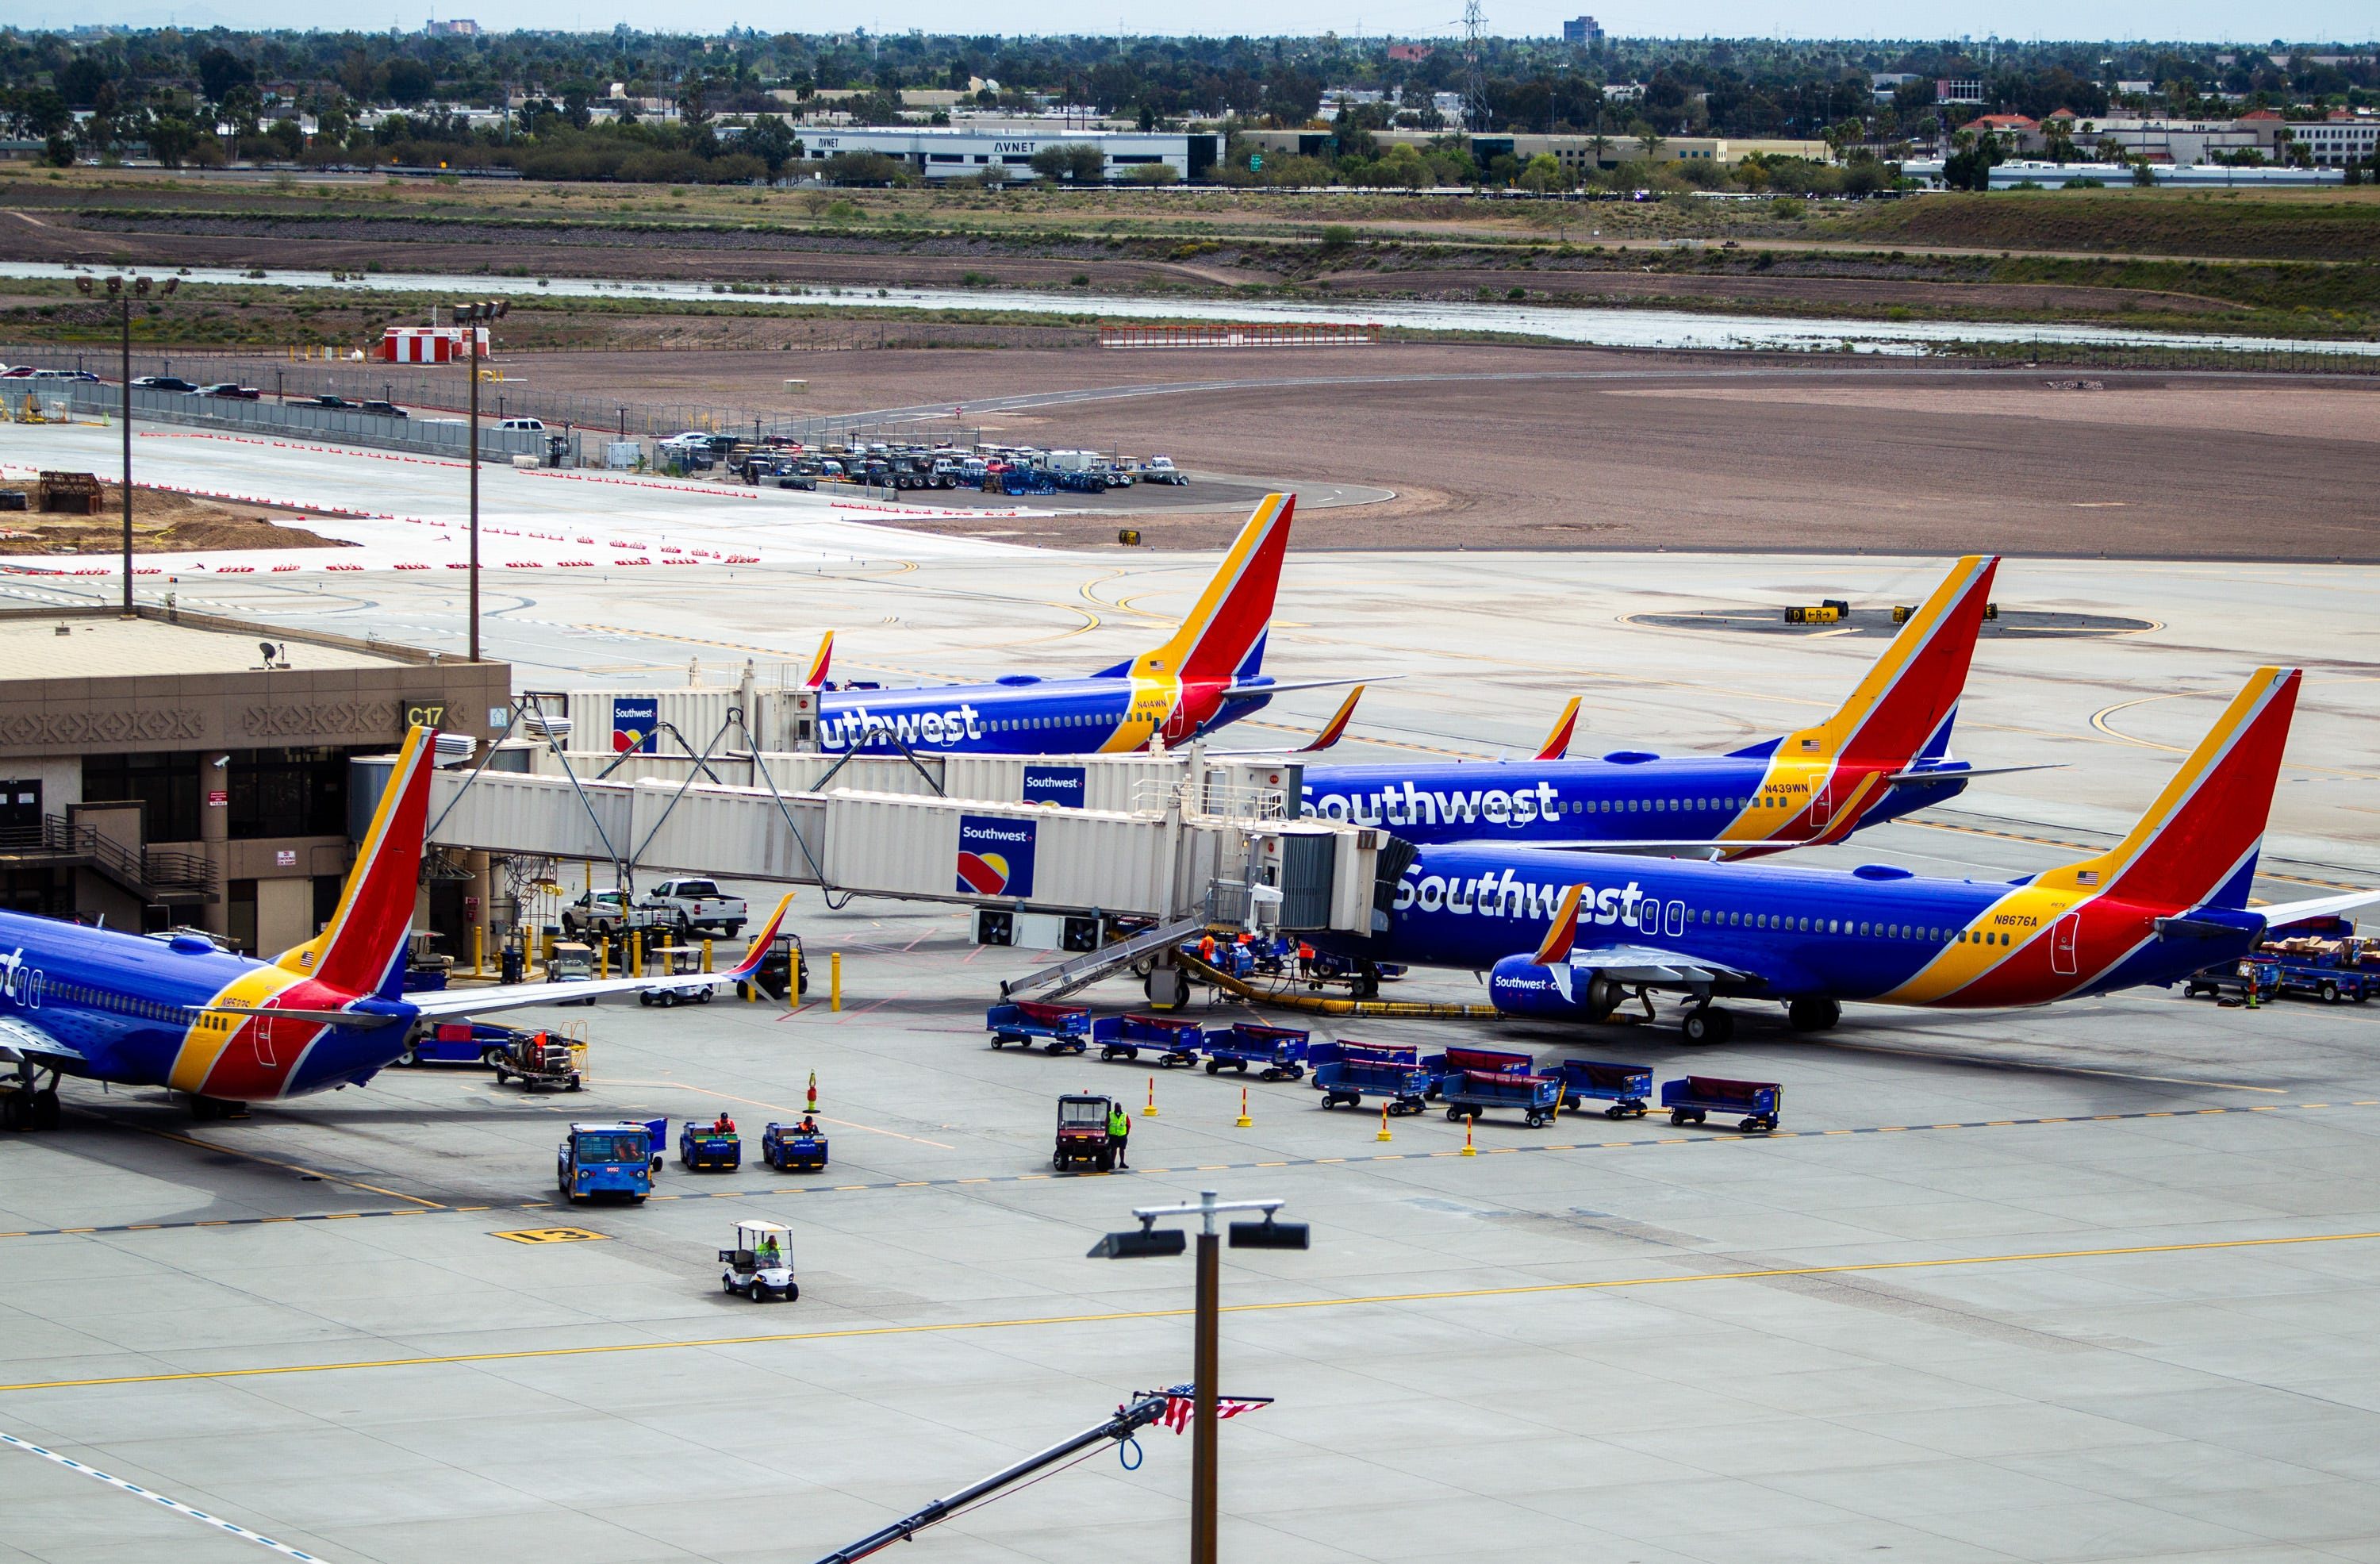 After days of flight delays, cancellations, Southwest Airlines hit with another tech issue